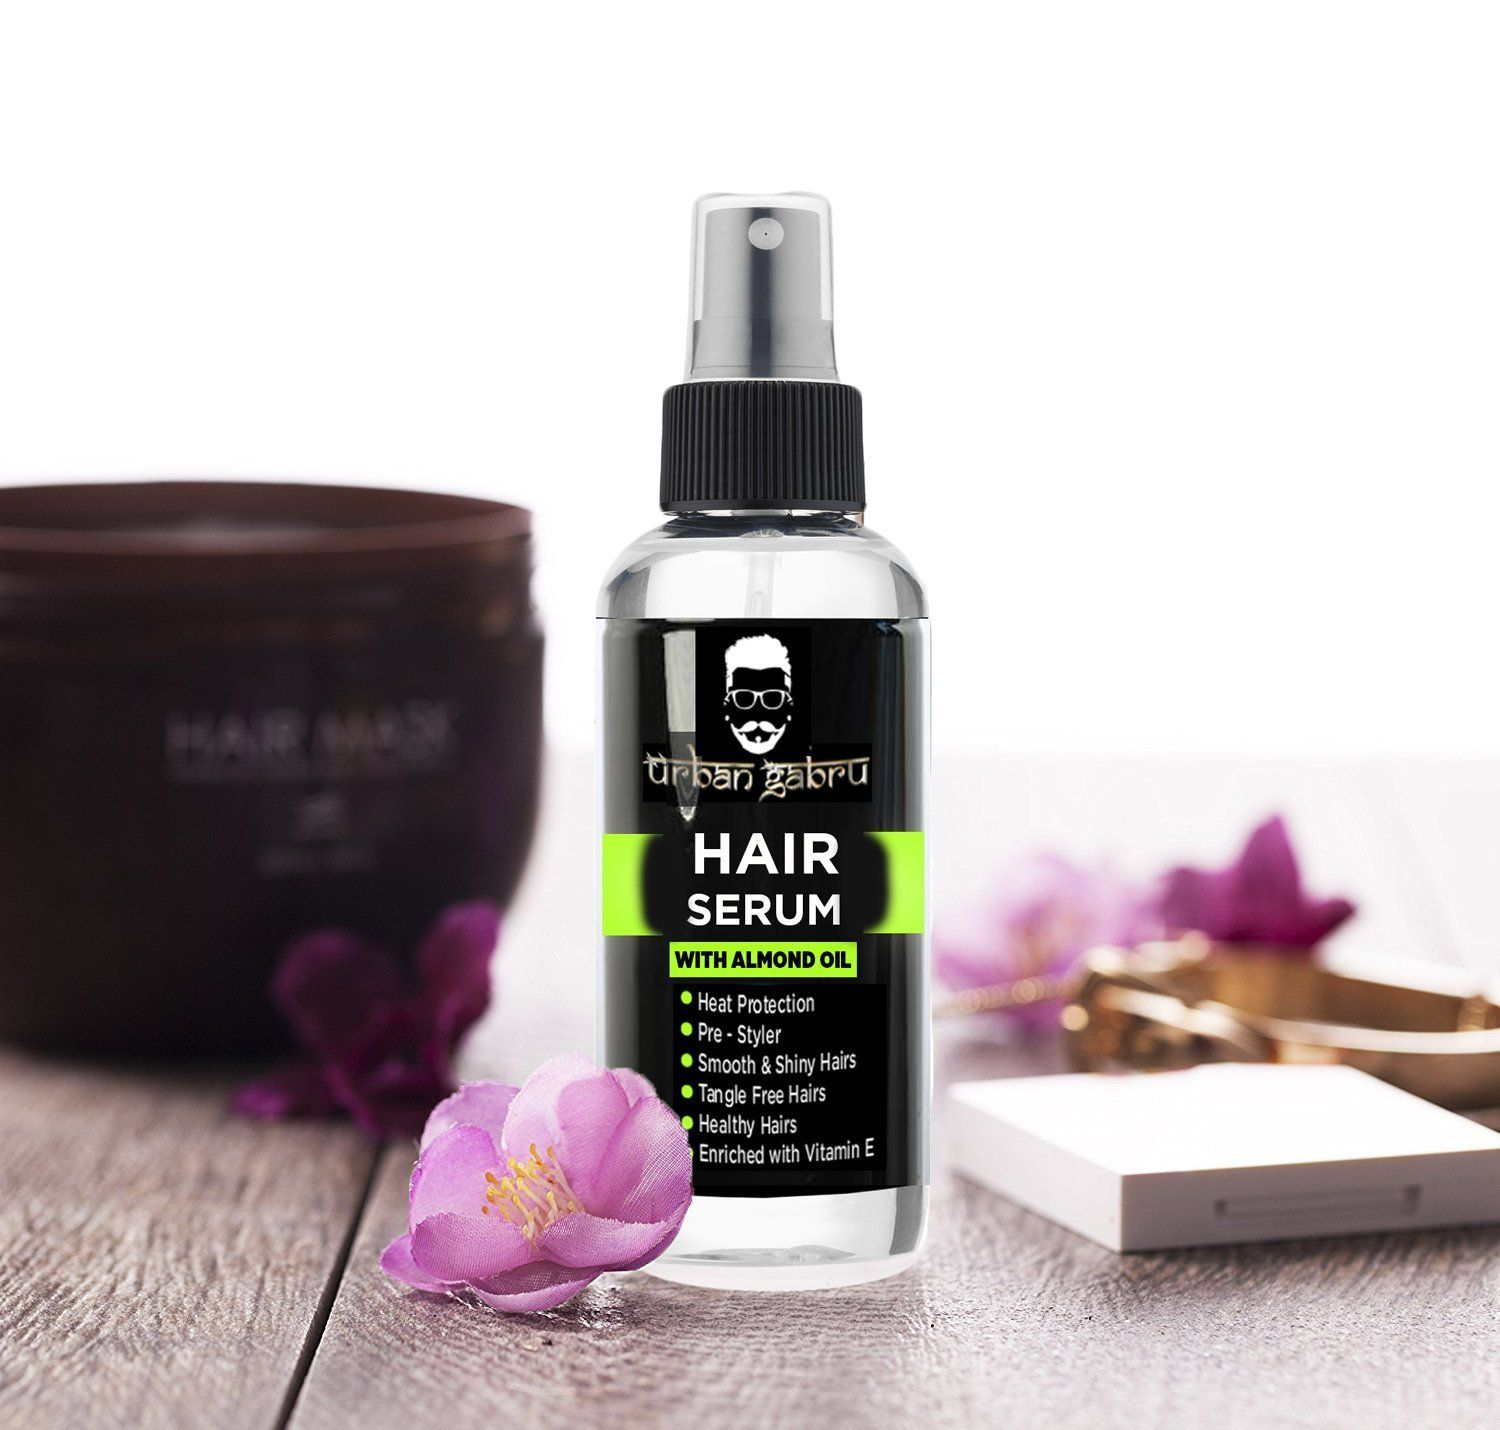 15 Best Serums For Hair in India (100 Genuine Reviews by